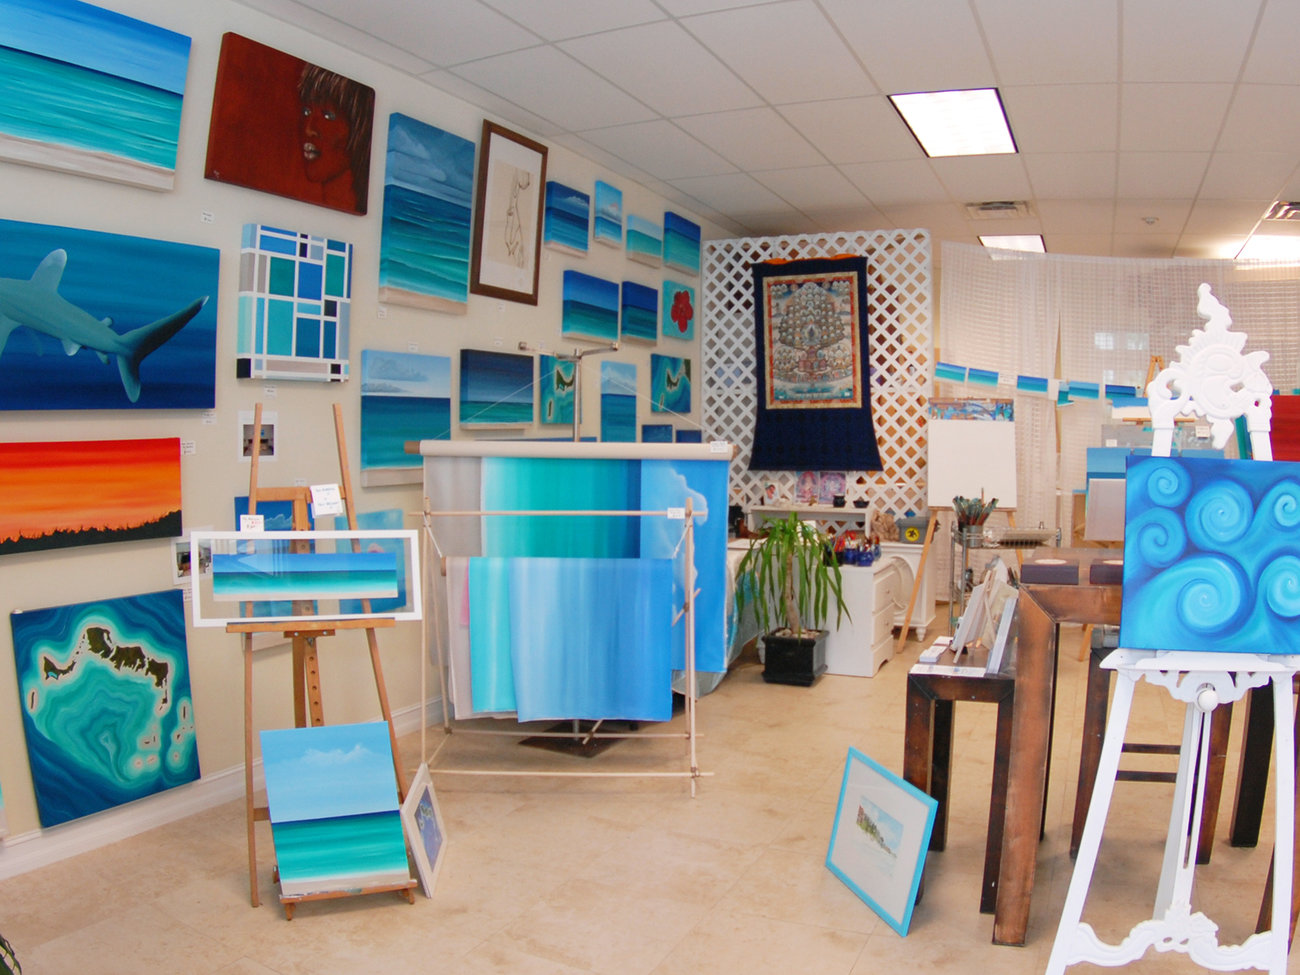 Making Waves Store in Turks and Caicos